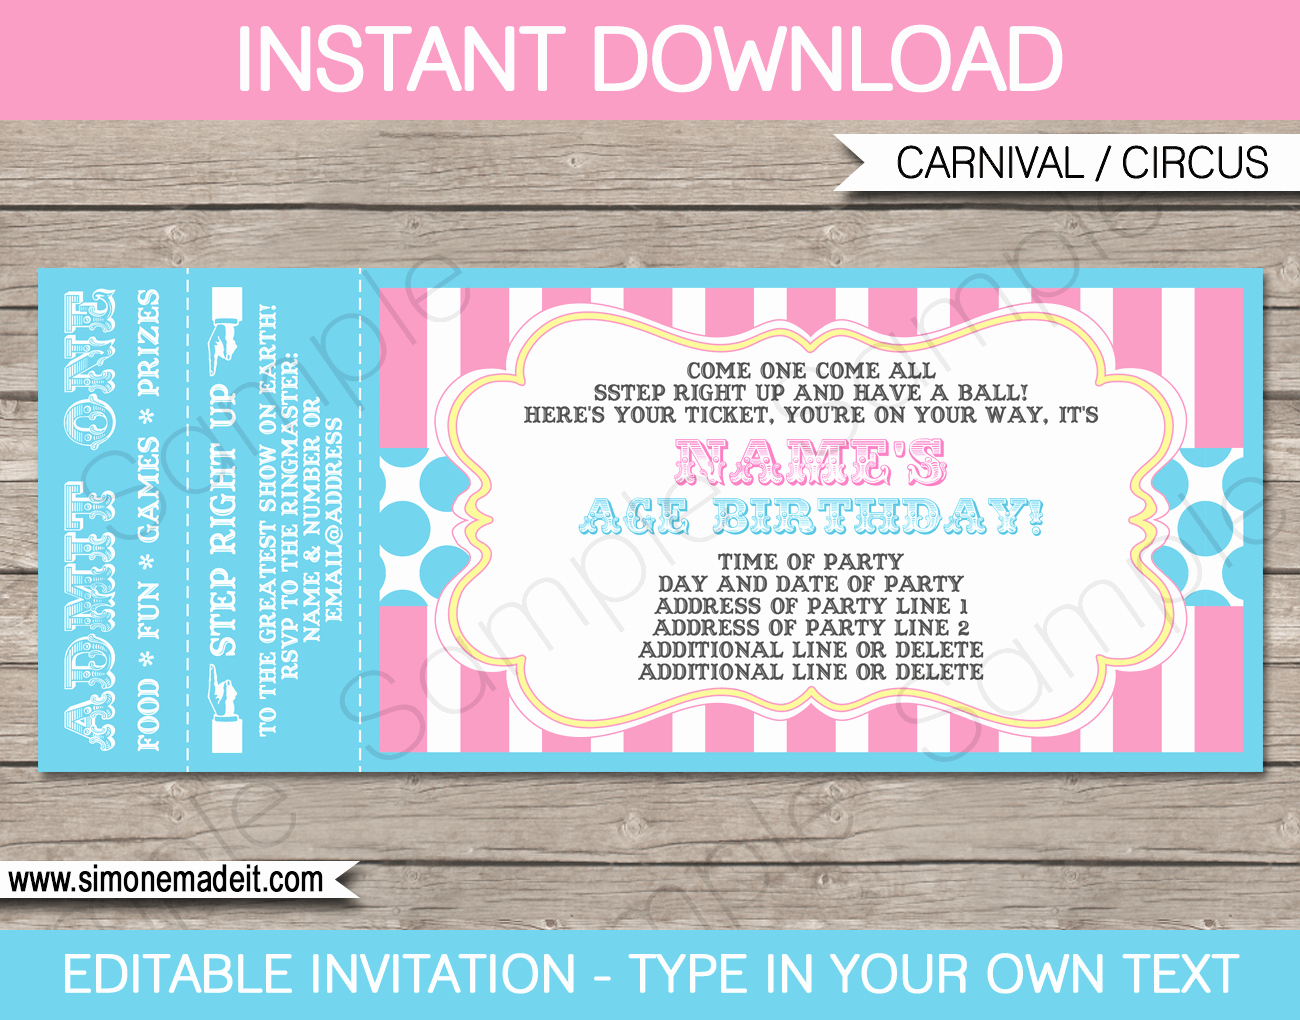 Concert Ticket Invitation Template Awesome Carnival Party Ticket Invitations Template